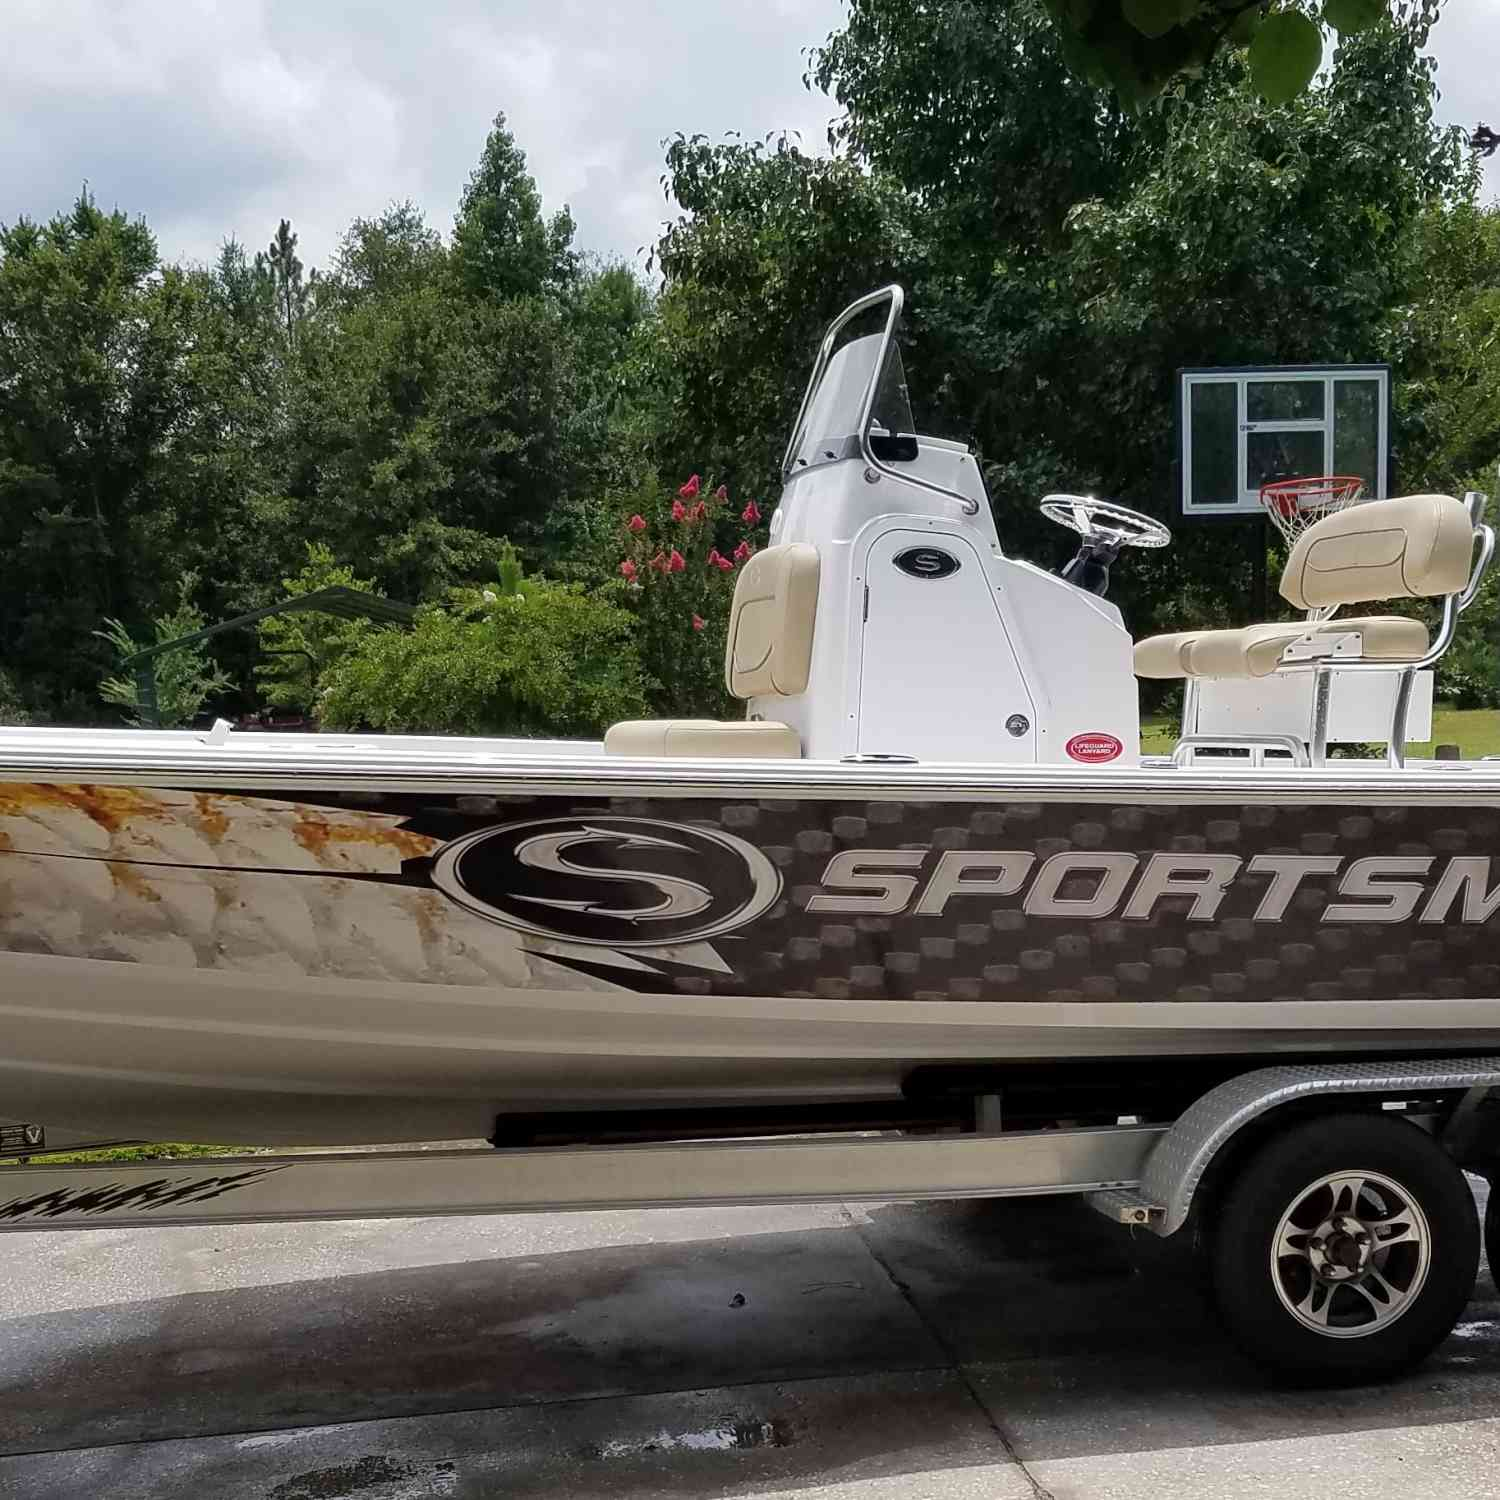 Title: Ready for the water. - On board their Sportsman Tournament 234 Bay Boat - Location: Ludowici Ga. Participating in the Photo Contest #SportsmanApril2019